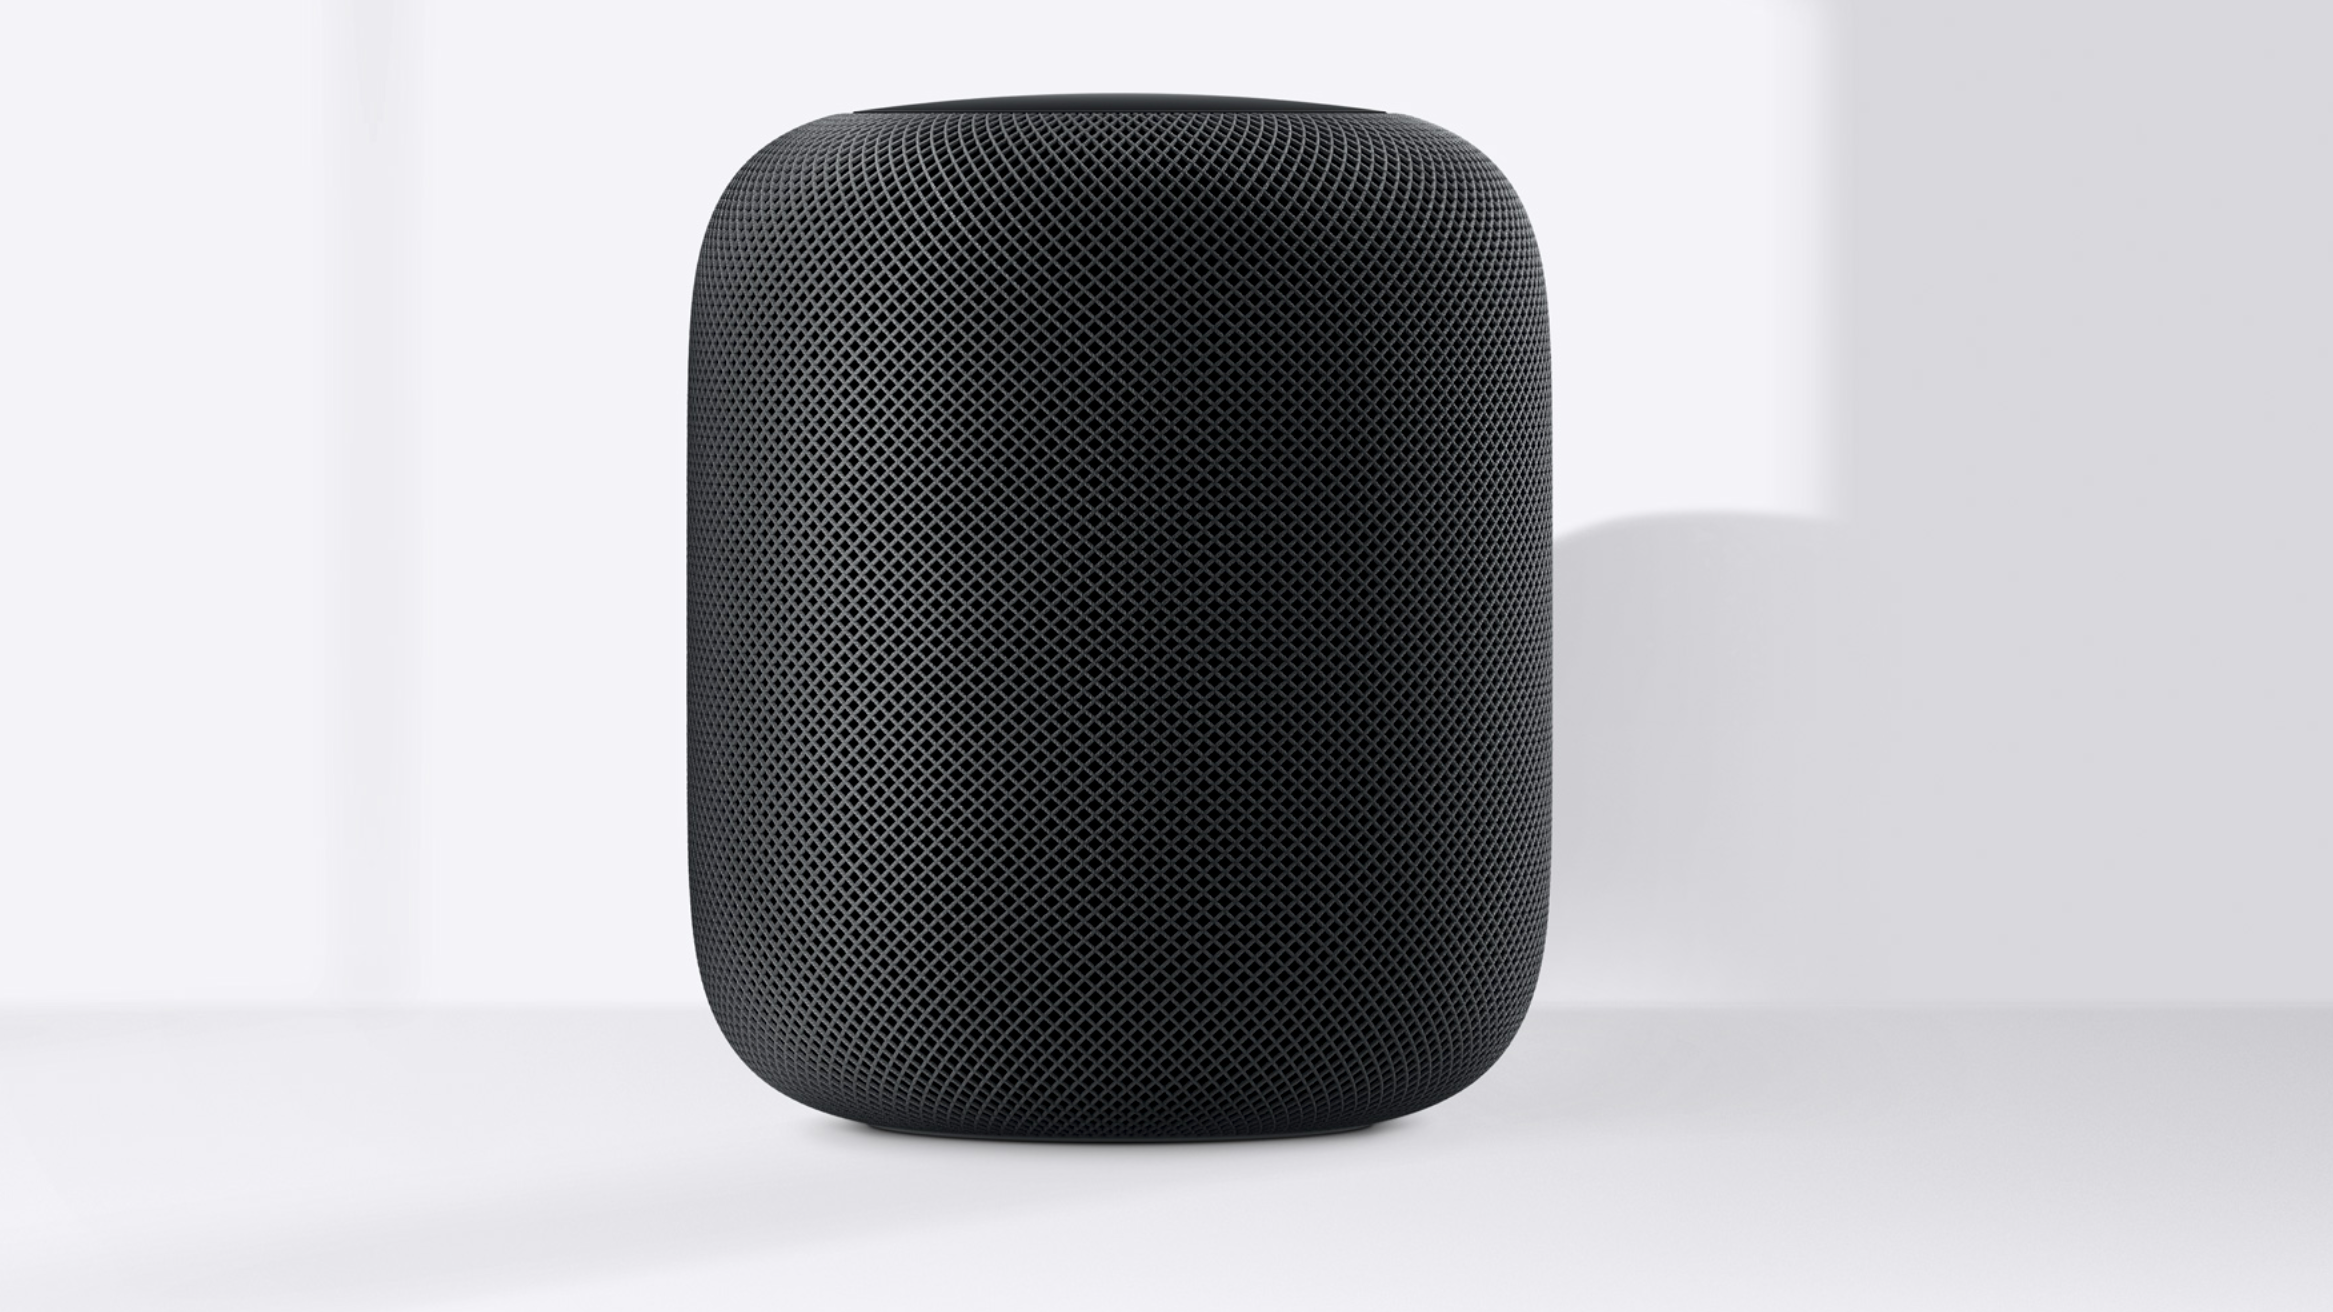 Put A Coaster Under Your Apple HomePod To Protect Wooden Surfaces